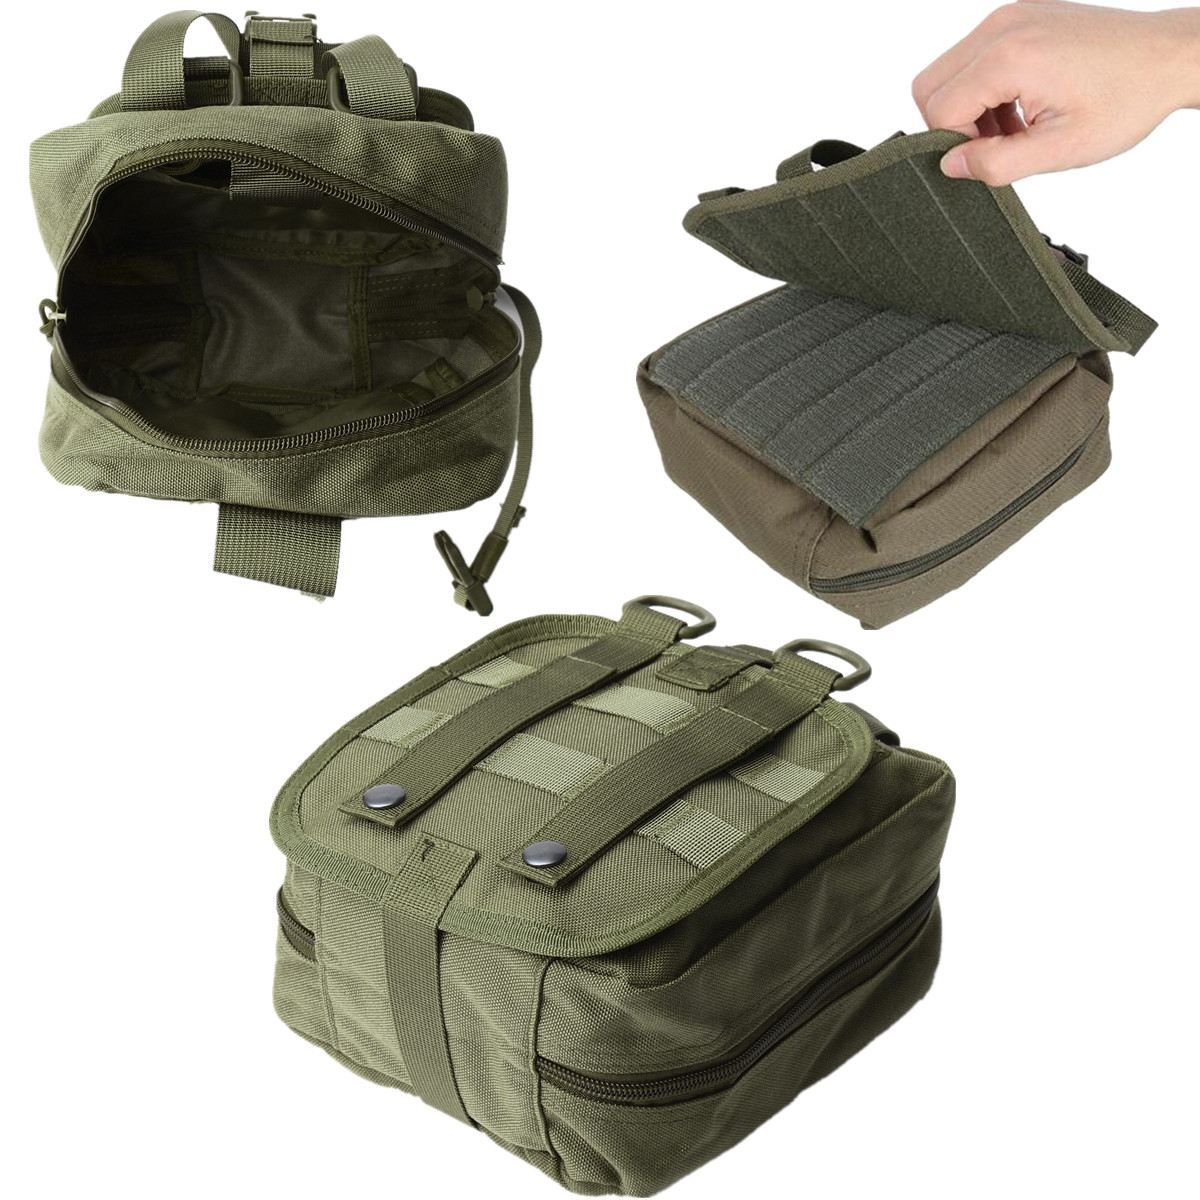 NEW Empty Bag Tactical Medical First Aid Utility Pouch Emergency Bag For Vest & Belt Treatment Pack Outdoor